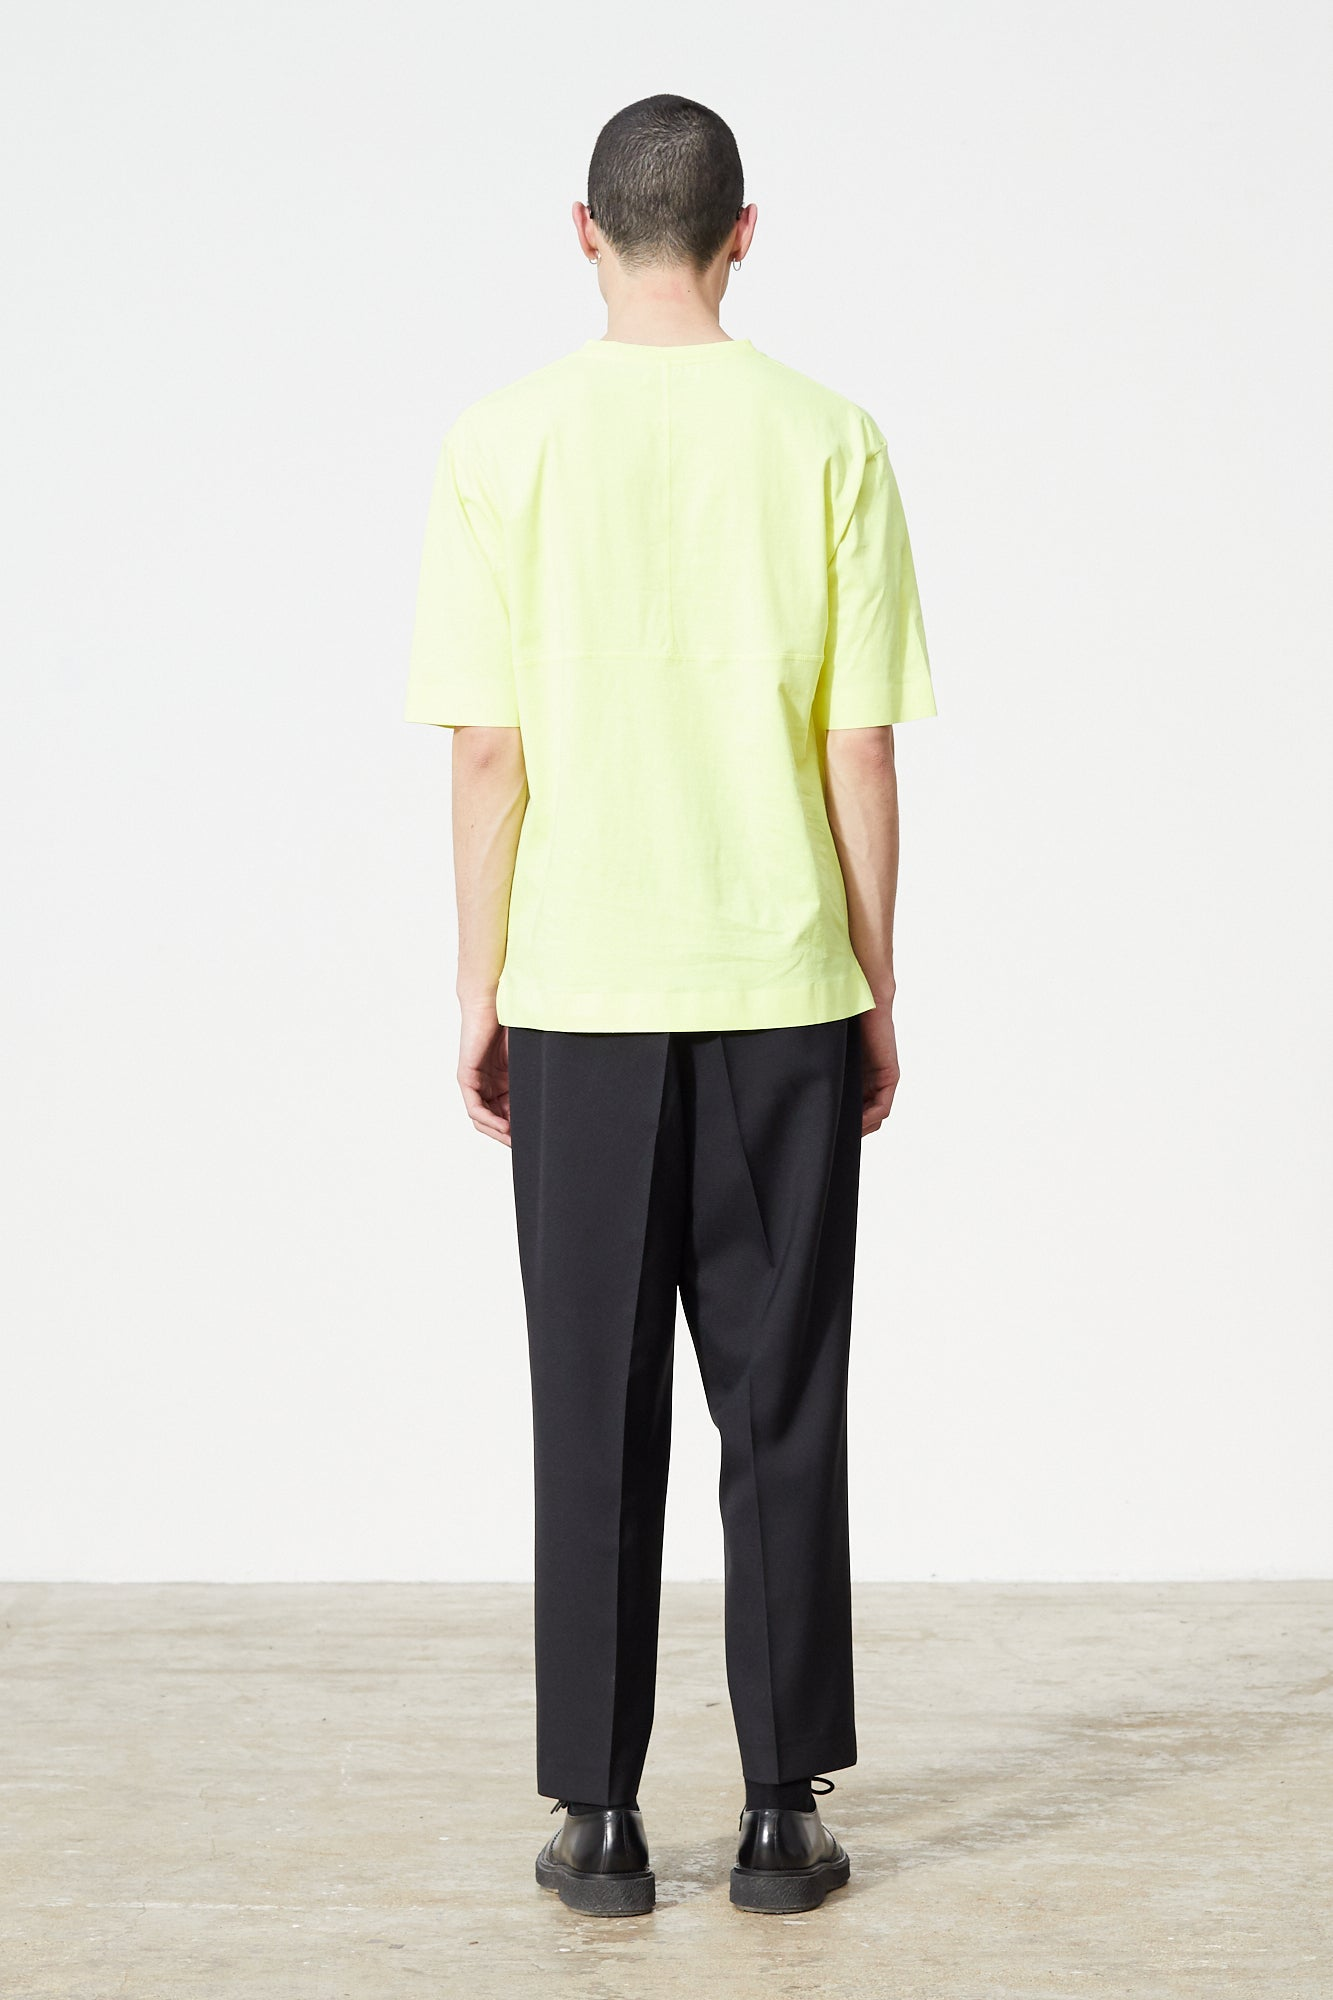 Études Cosmic Neon Yellow T-shirt 2